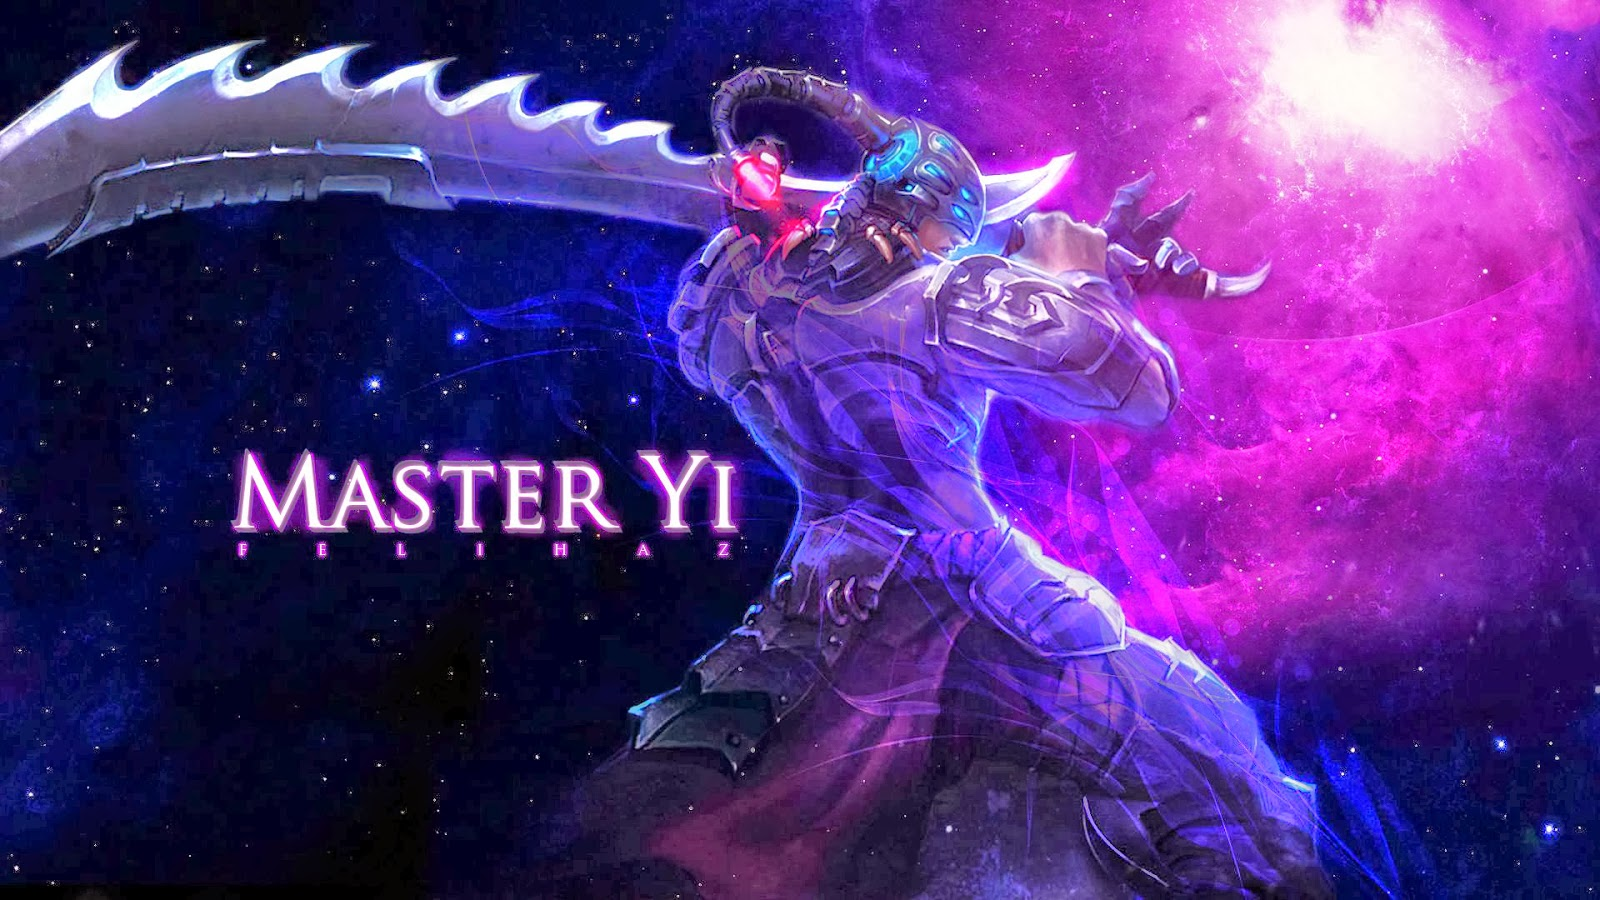 Master Yi League Of Legends Wallpaper Desktop